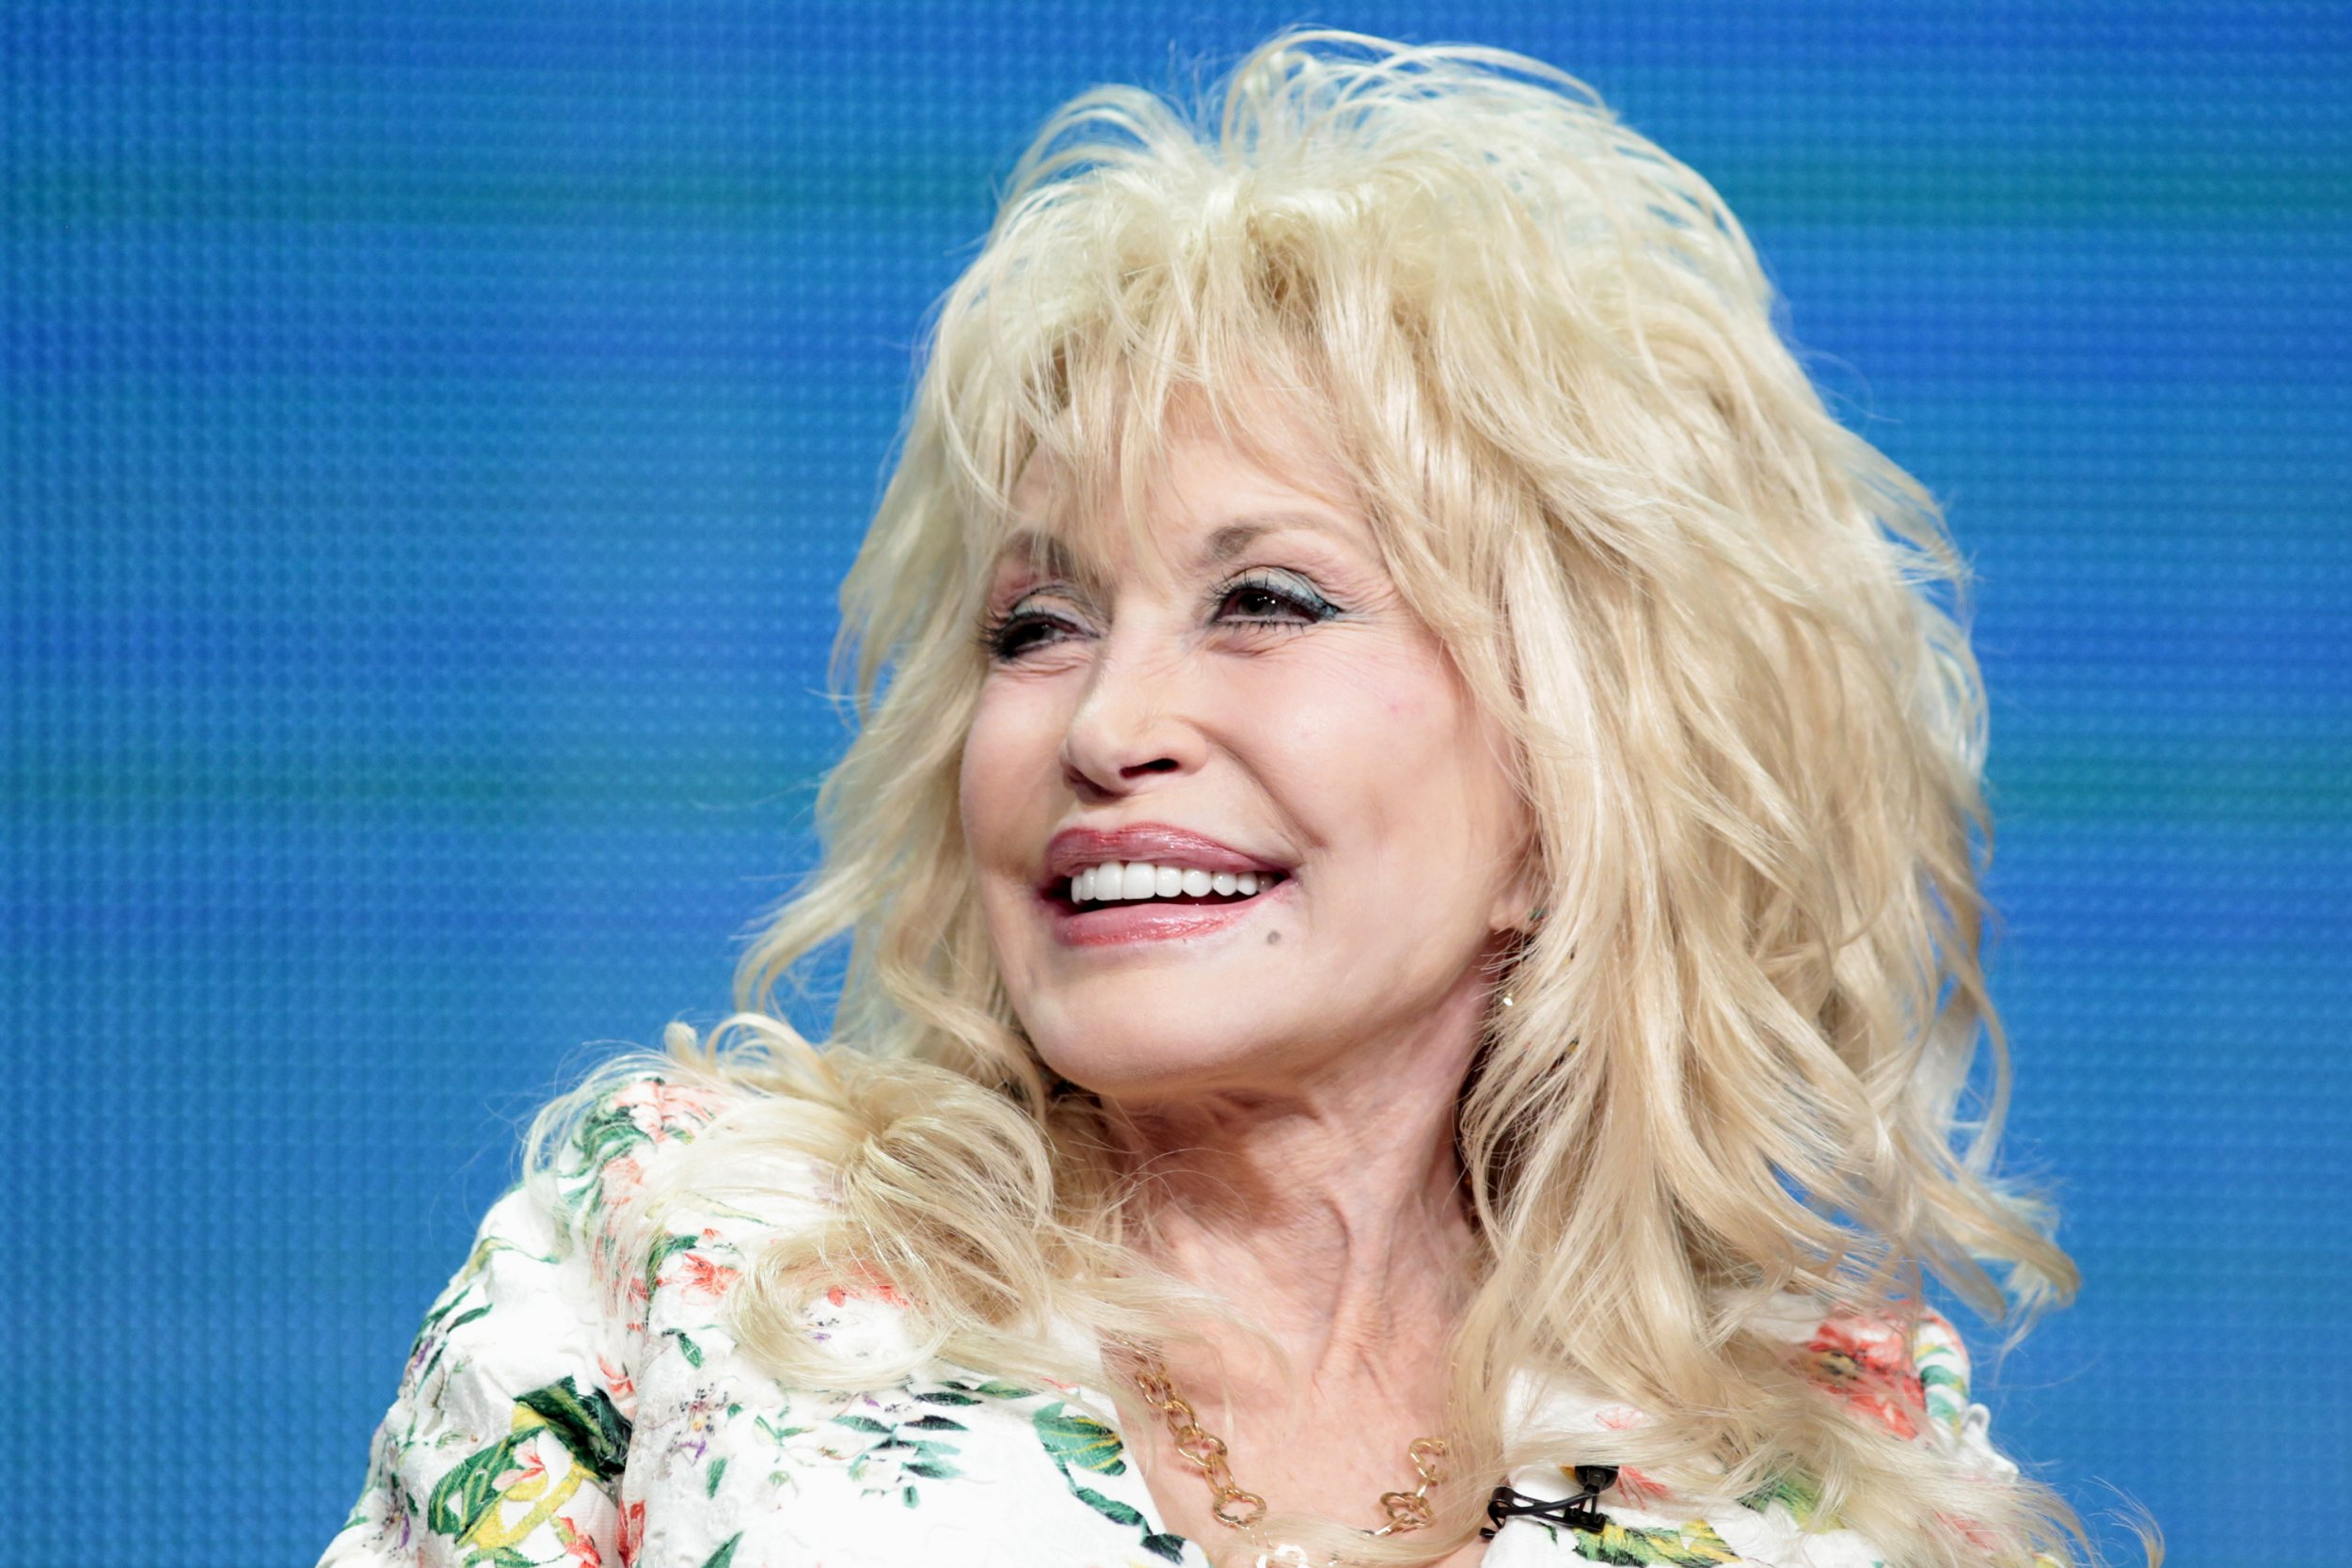 Dolly Parton Talks About Her Judge Not Lest Ye Be Judged Philosophy